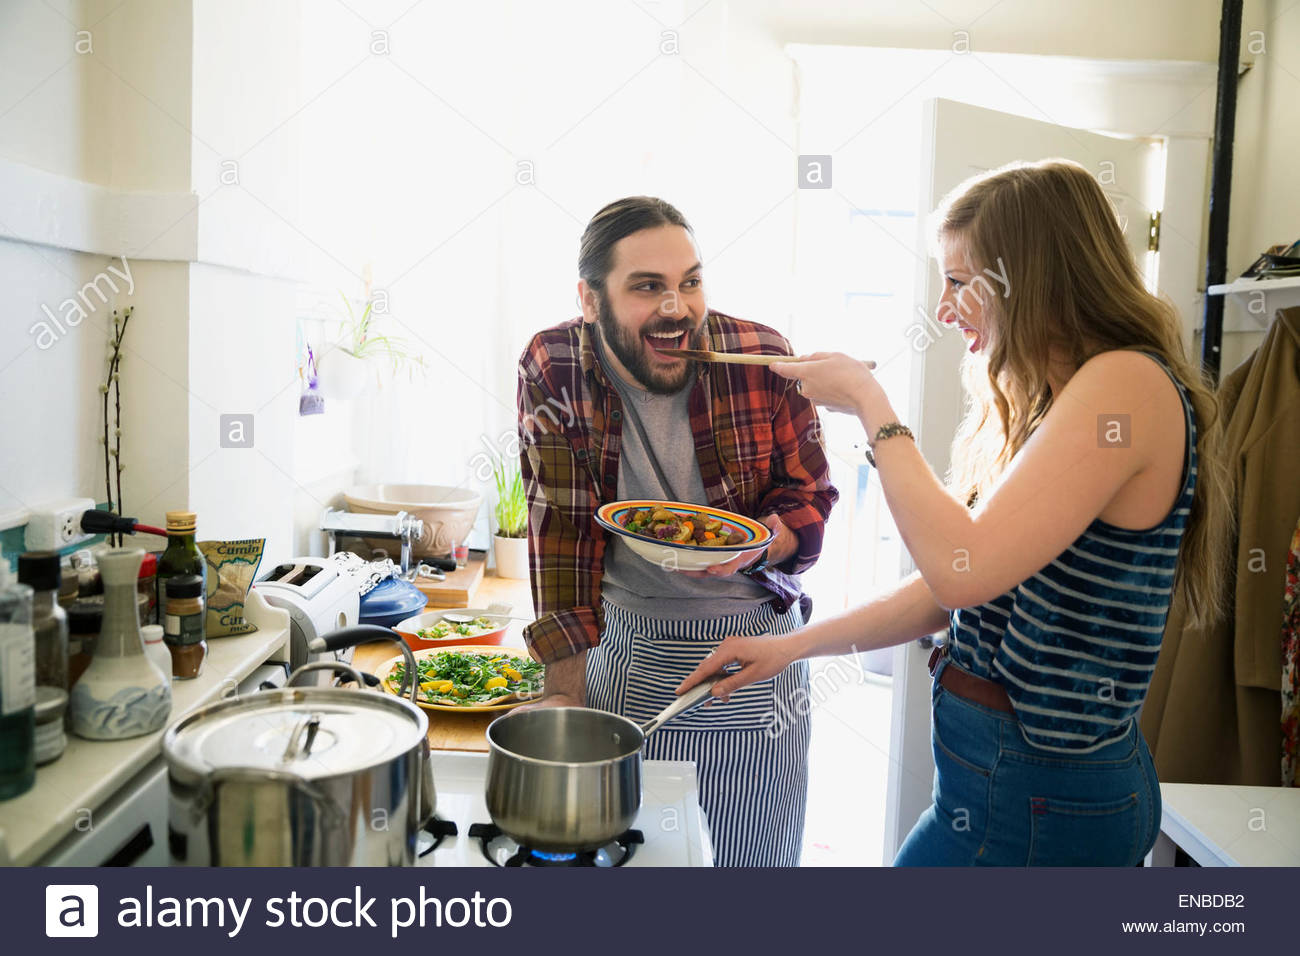 Couple cooking and tasting in kitchen - Stock Image